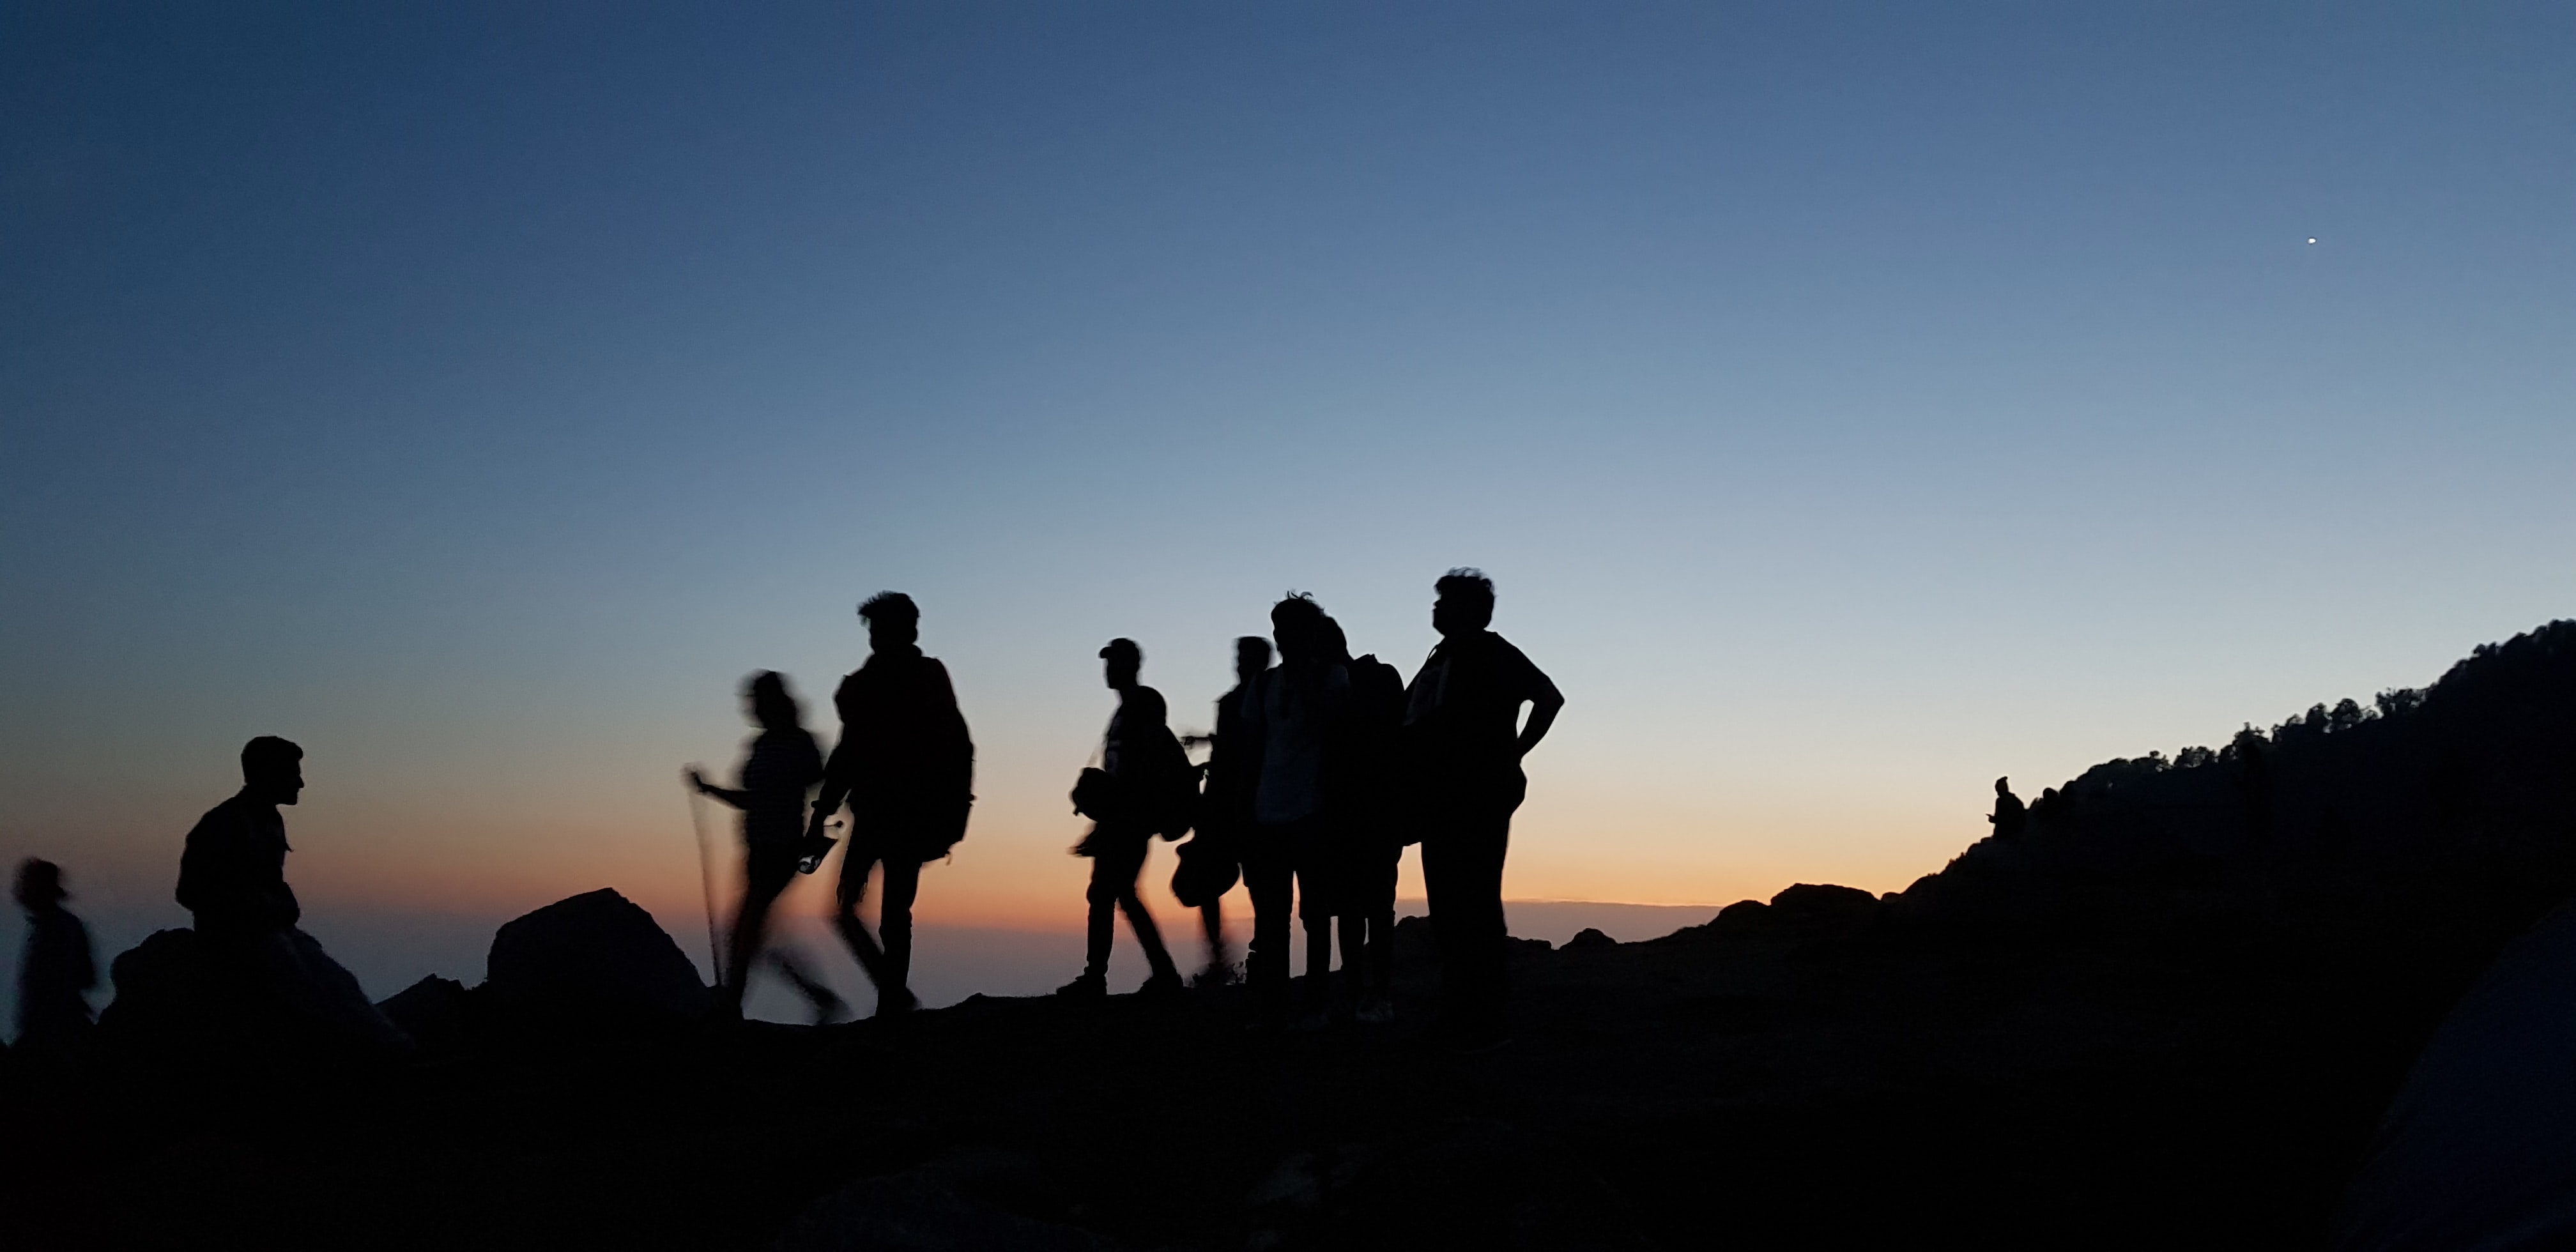 silhouette on people standing on mountain during blue hour